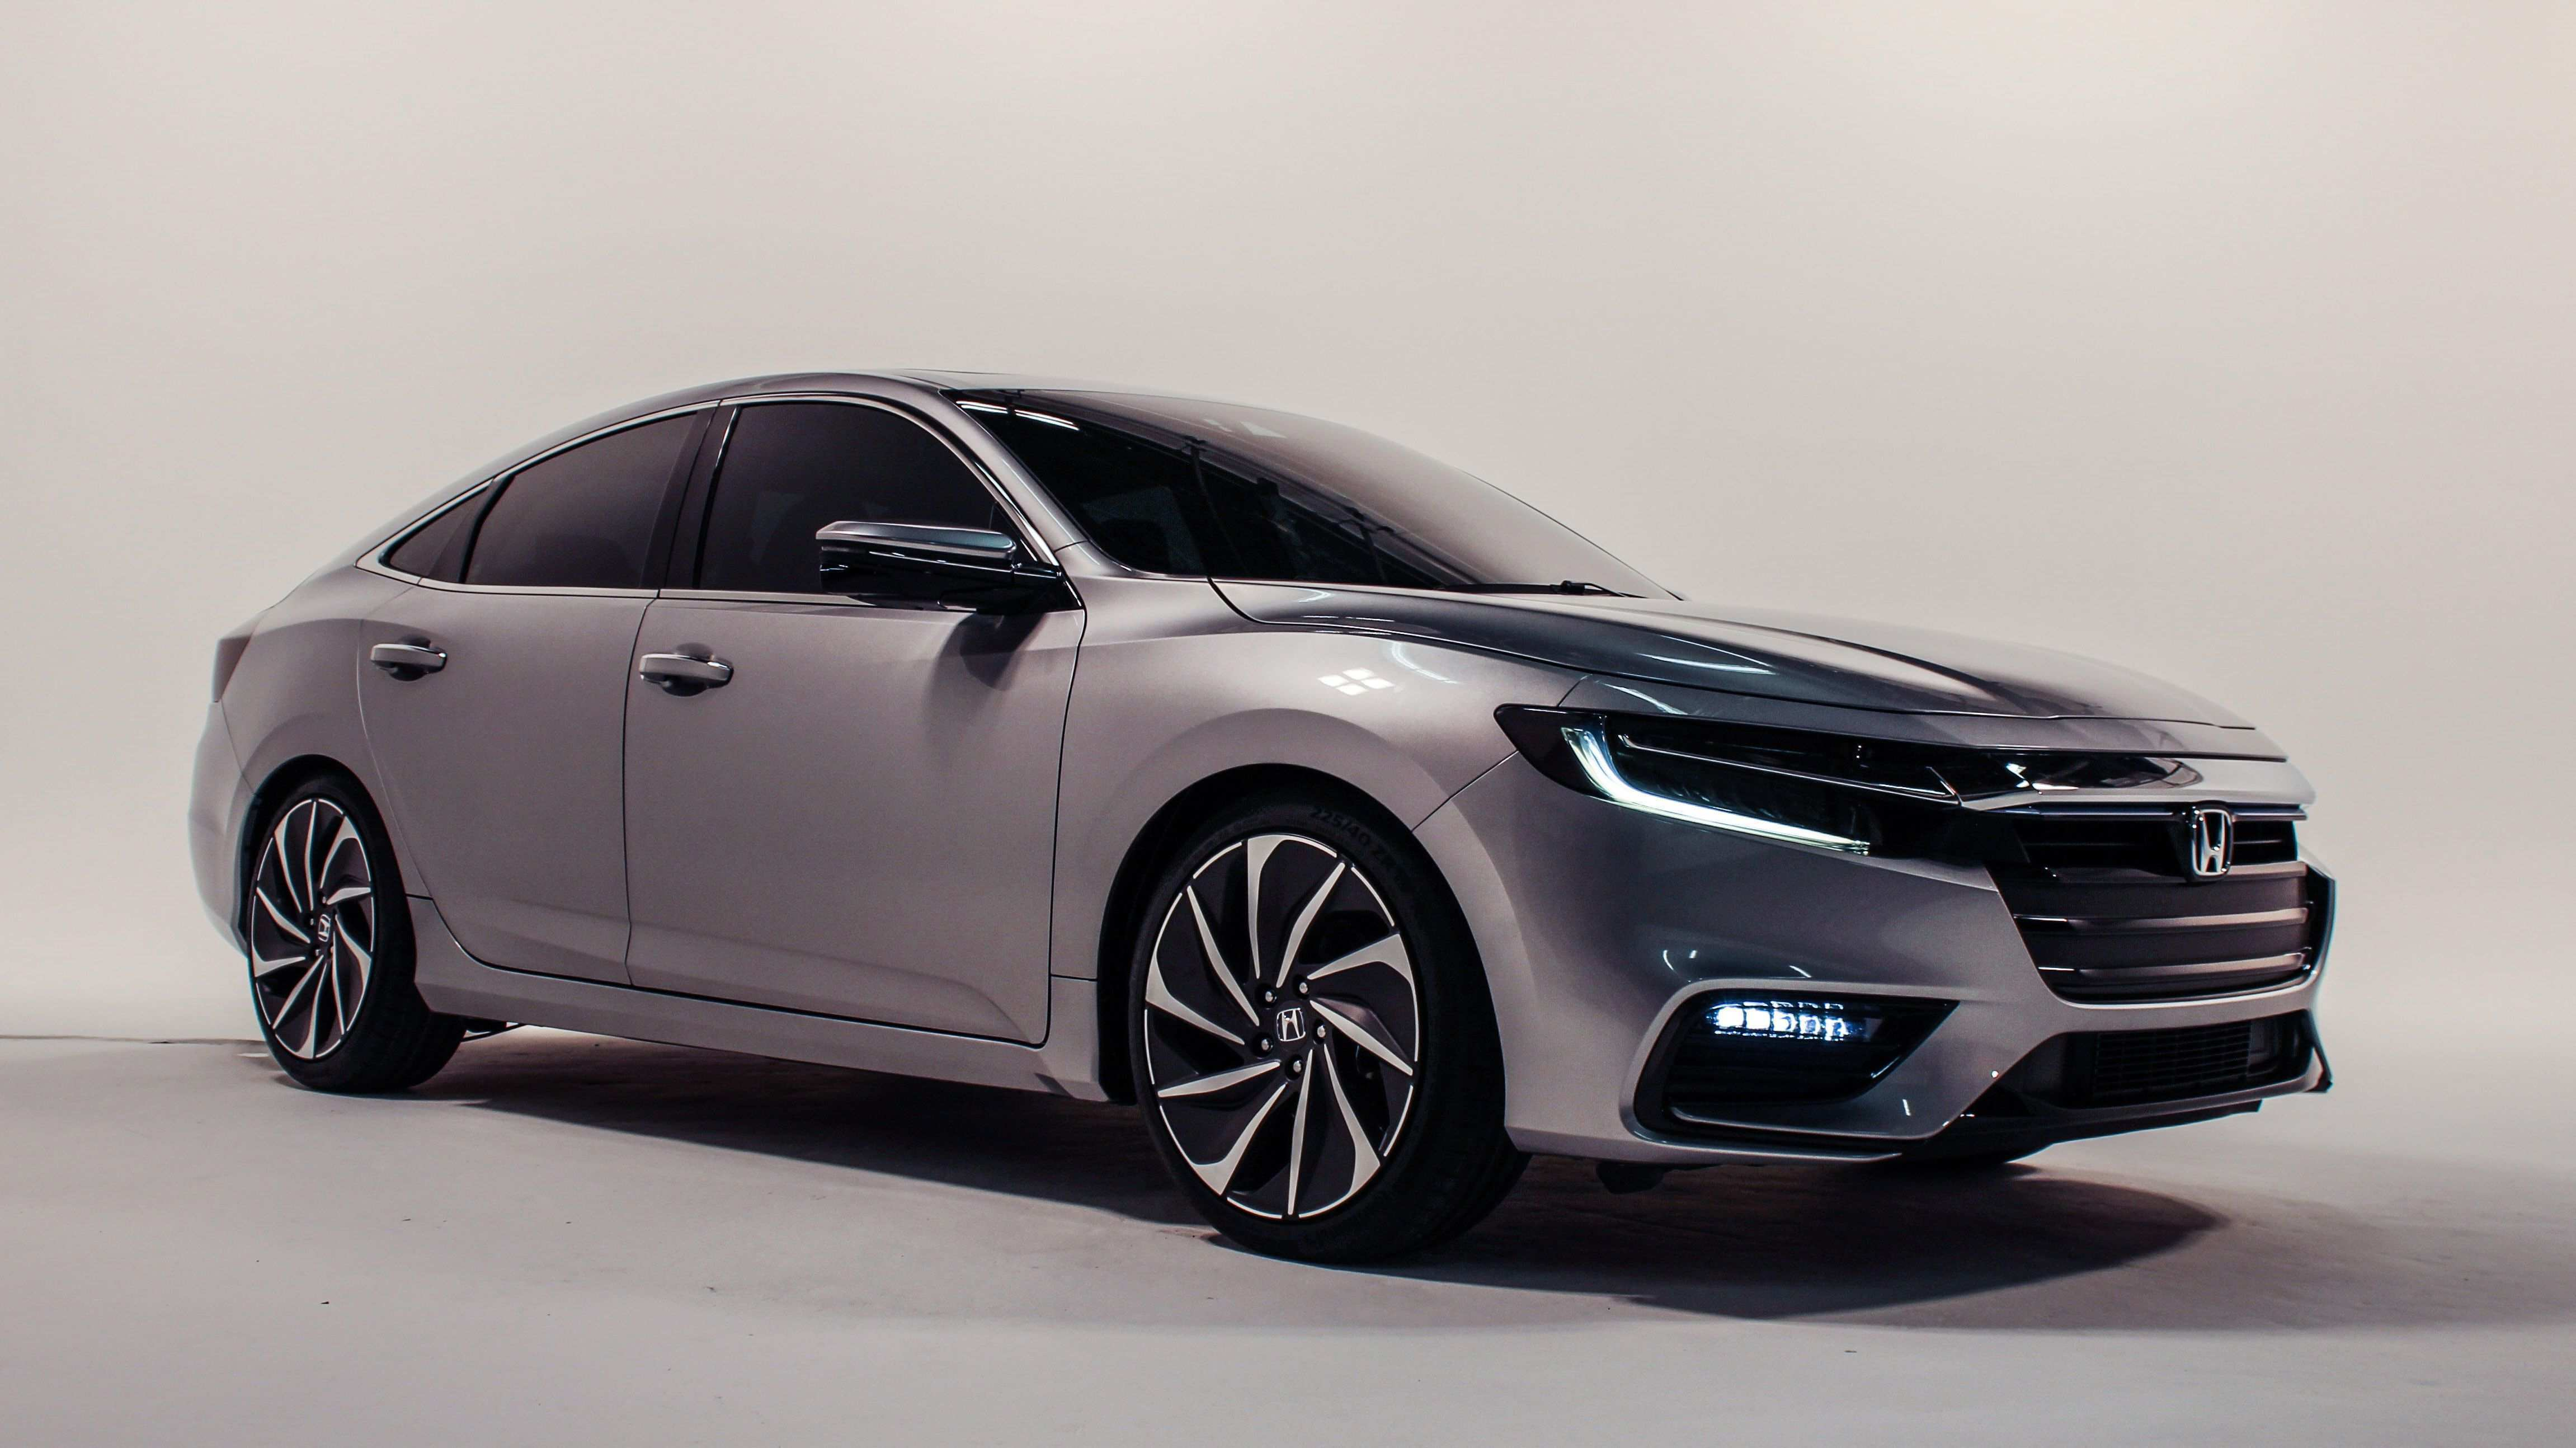 52 The Best 2020 Honda Insight Images